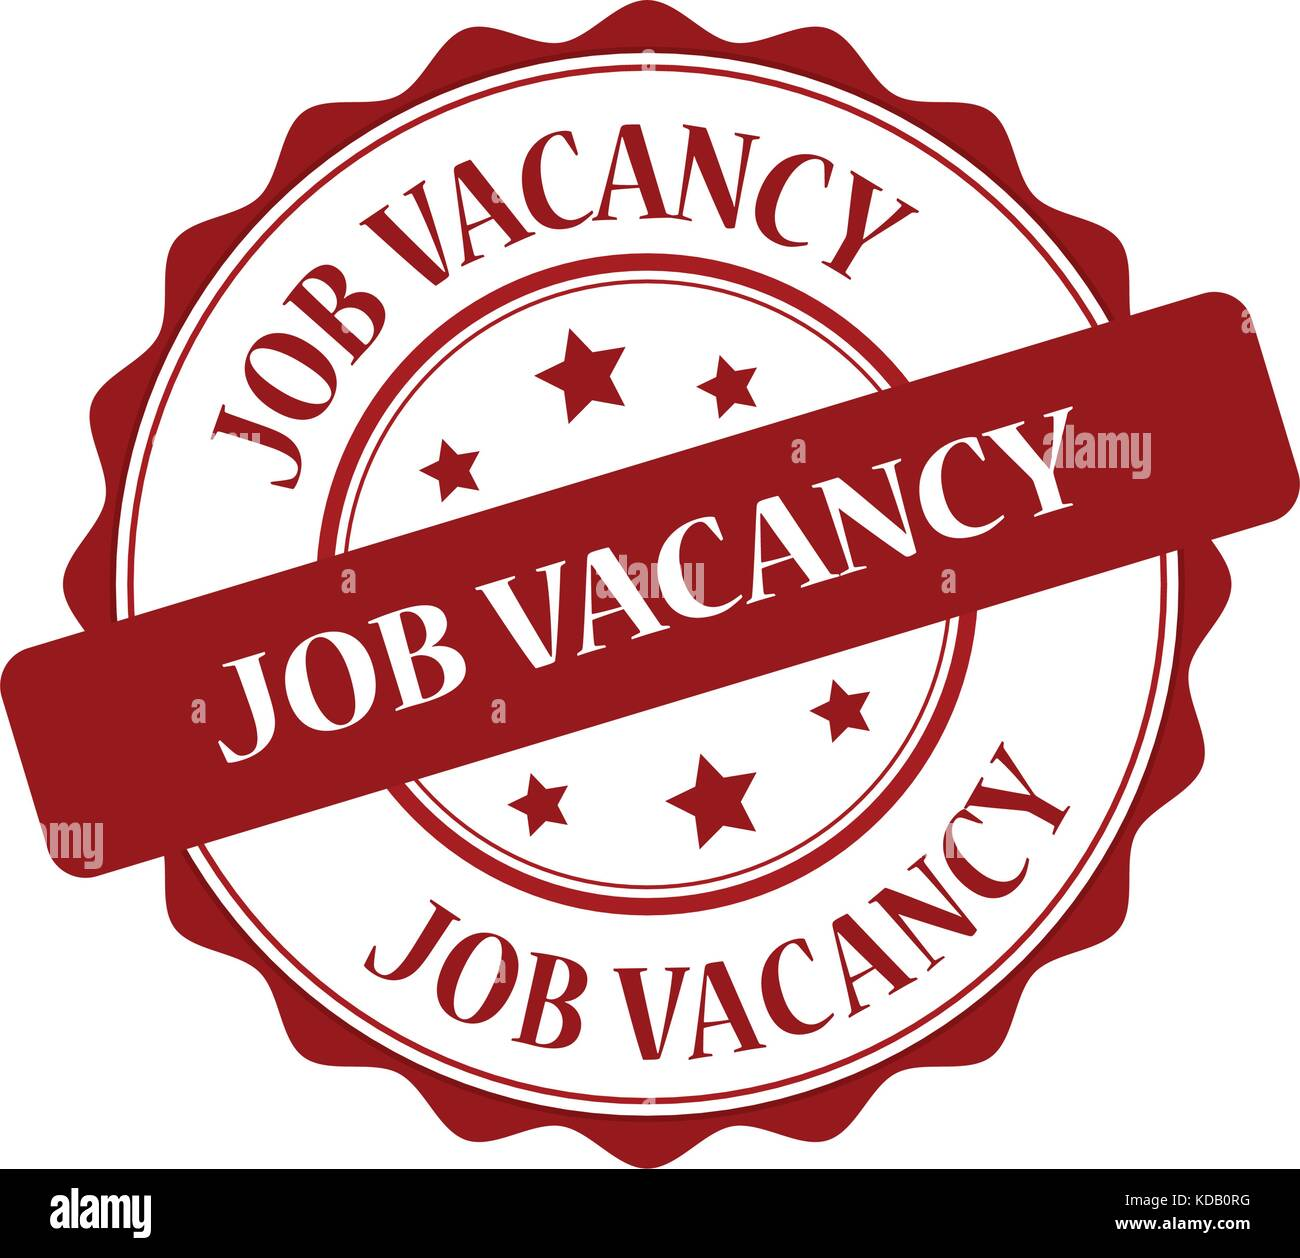 Job Vacancy High Resolution Stock Photography and Images - Alamy